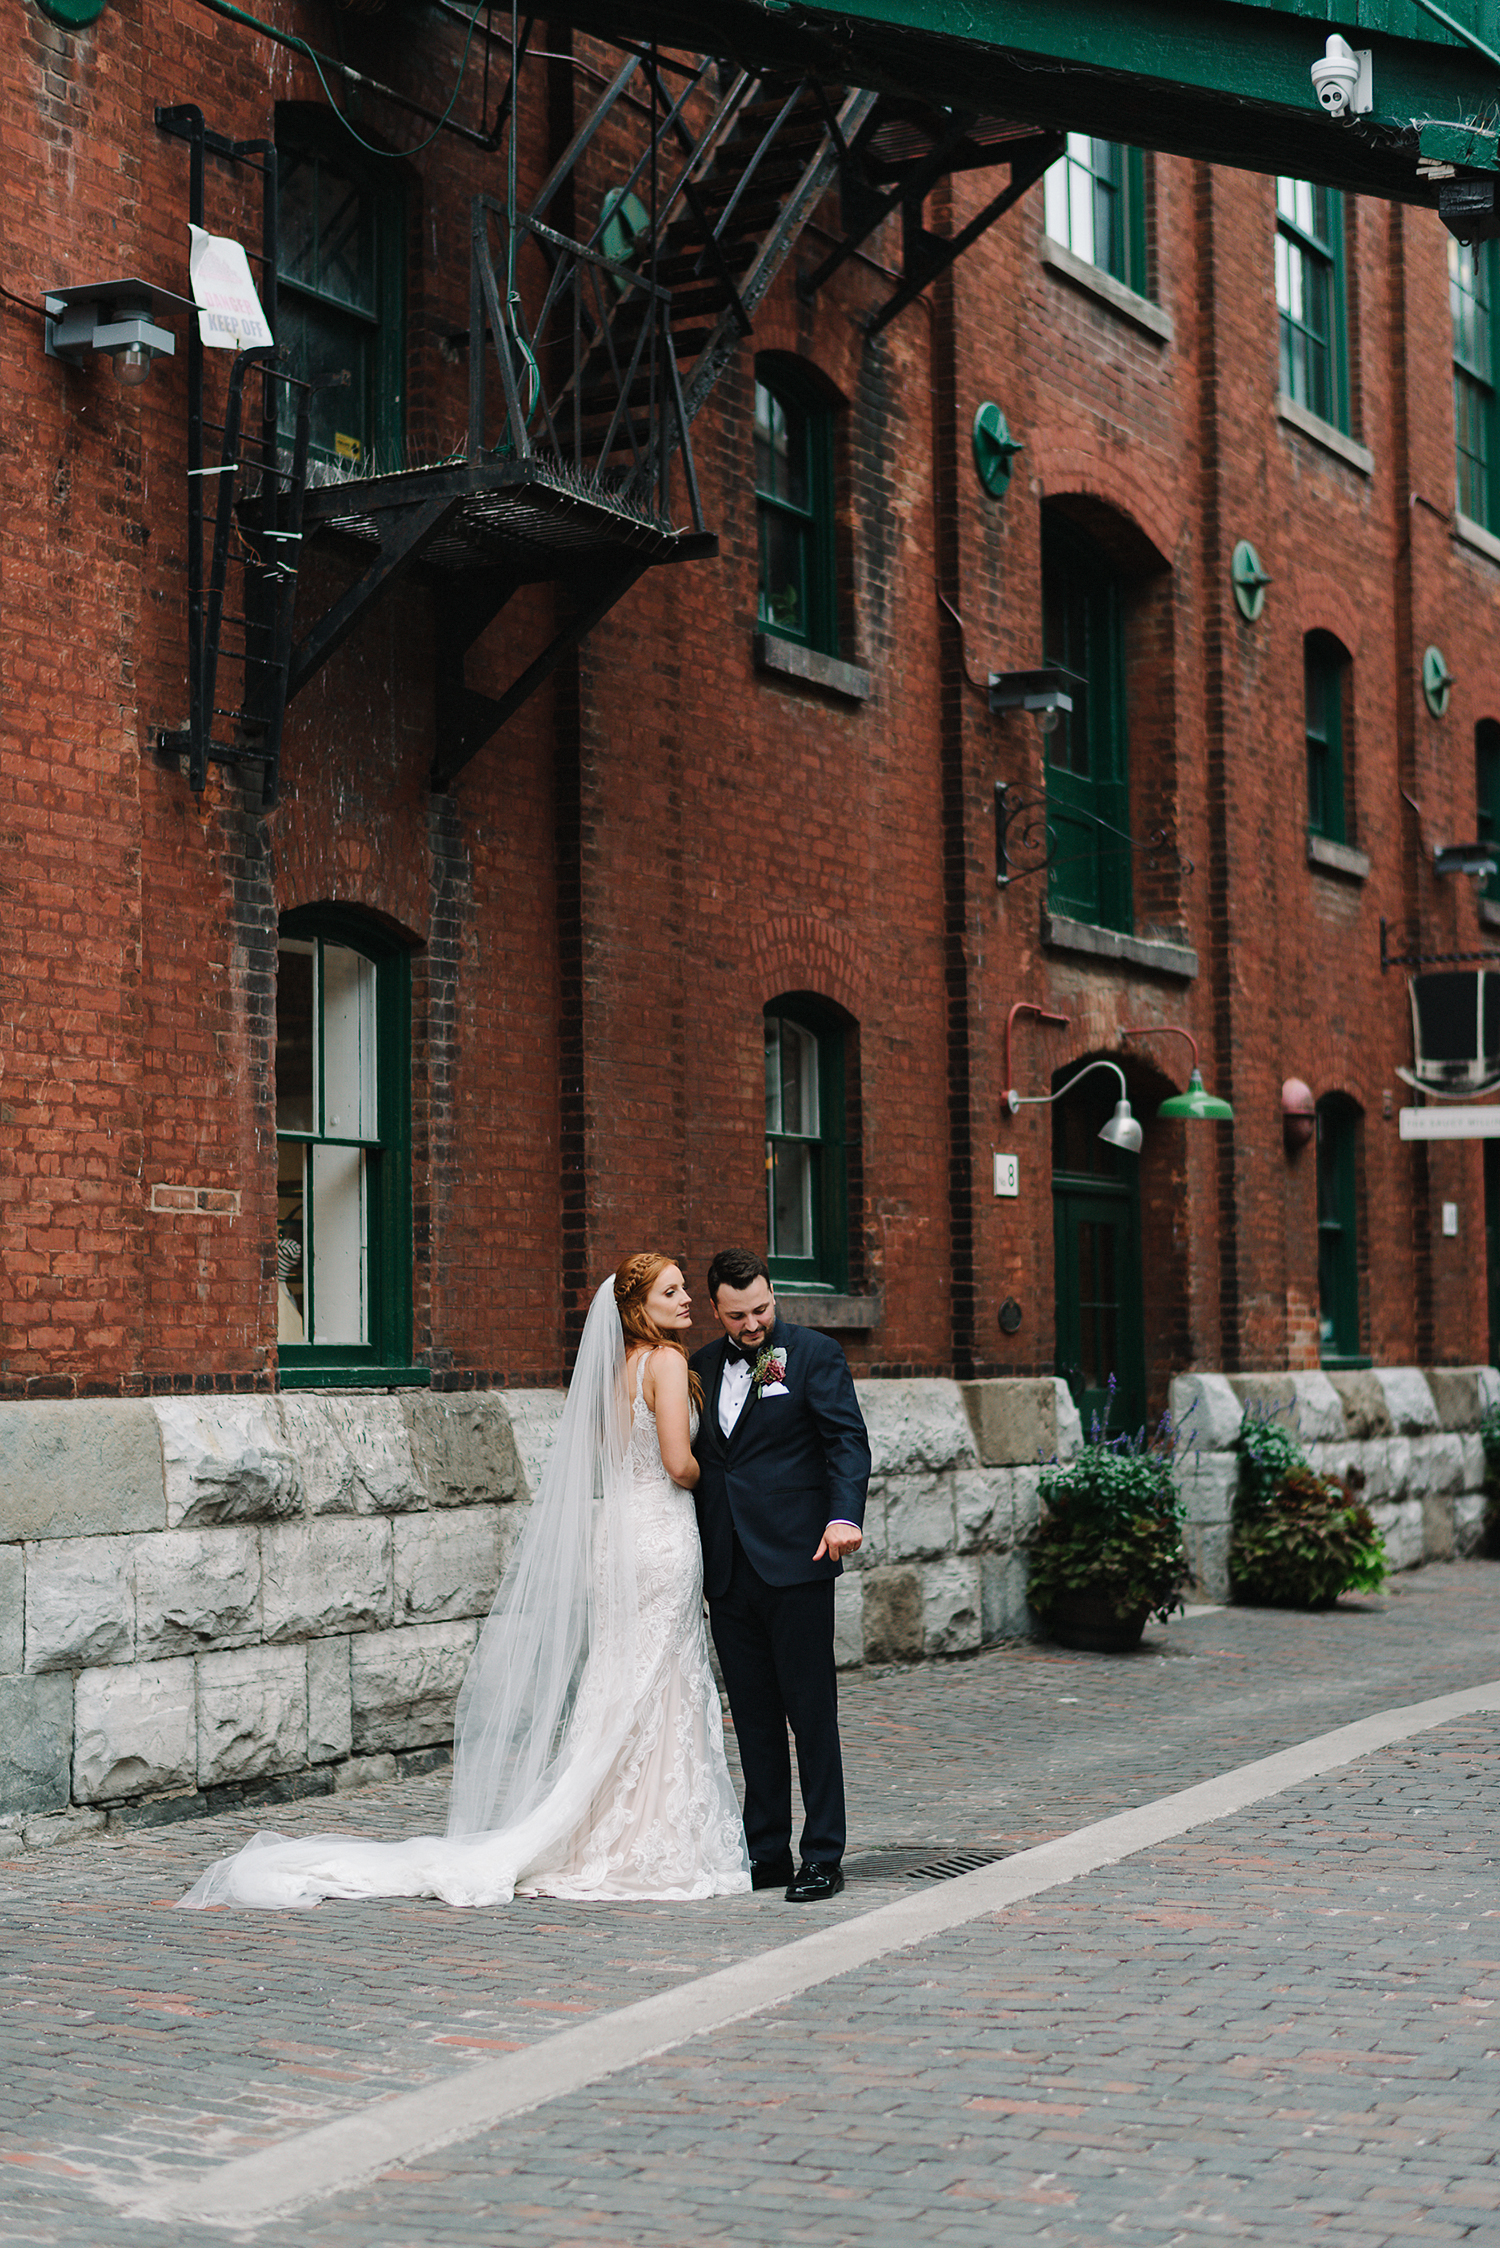 wedding-photographers-ryanne-hollies-photography-photojournalism-artistic-moody-toronto-airship37-distillery-district-groom-and-bride-poratraits-intimate-authentic-film-analog-photography-artistic-moody-editorial-magazine-cover.jpg